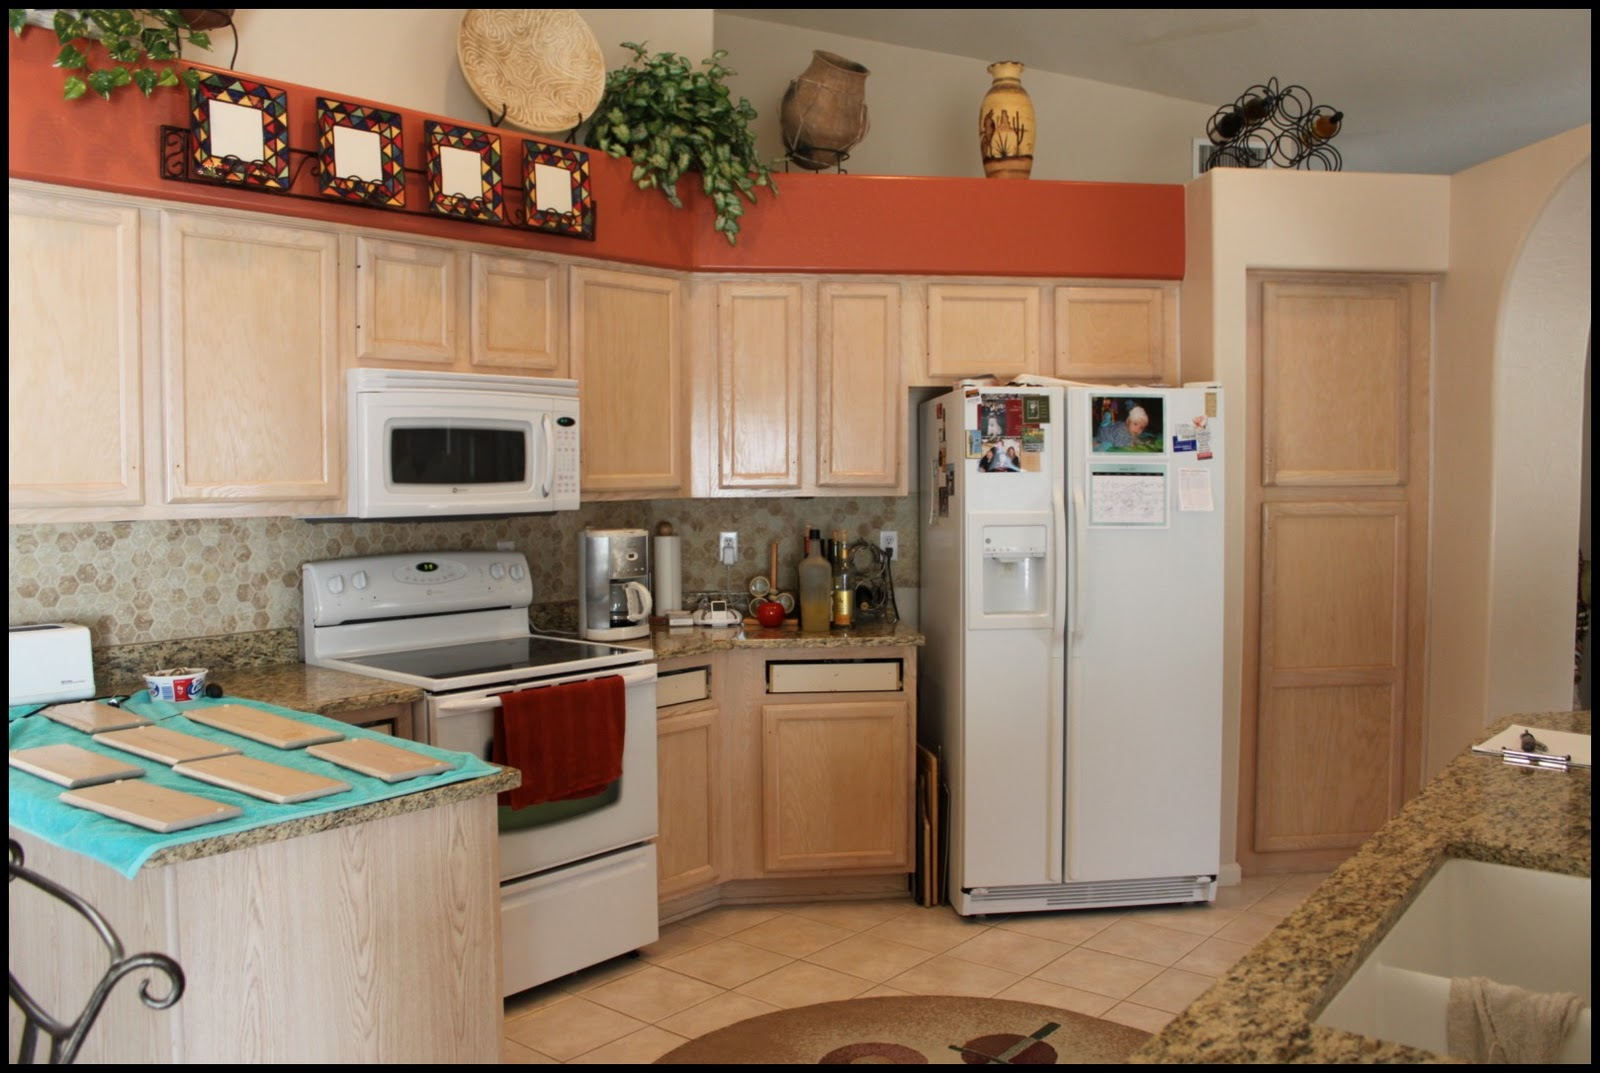 Ikea cabinets new 2013 white wash simple home decoration - Recommended kitchen cabinet color ideas to update the room quickly ...